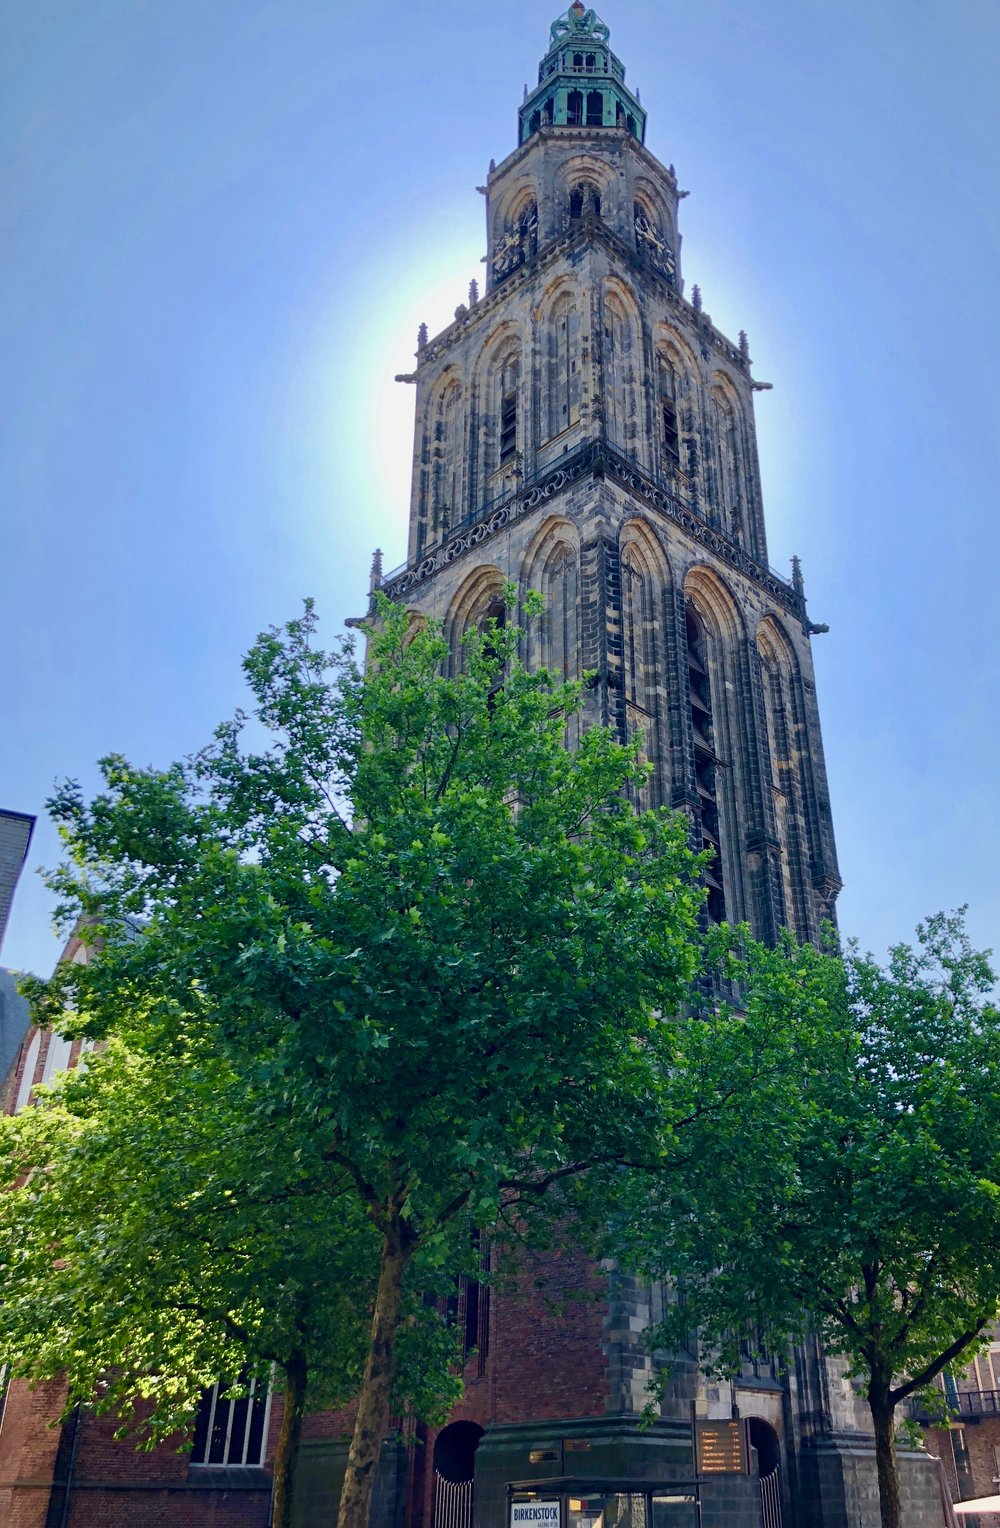 The tower of Martinikerk, Groningen.